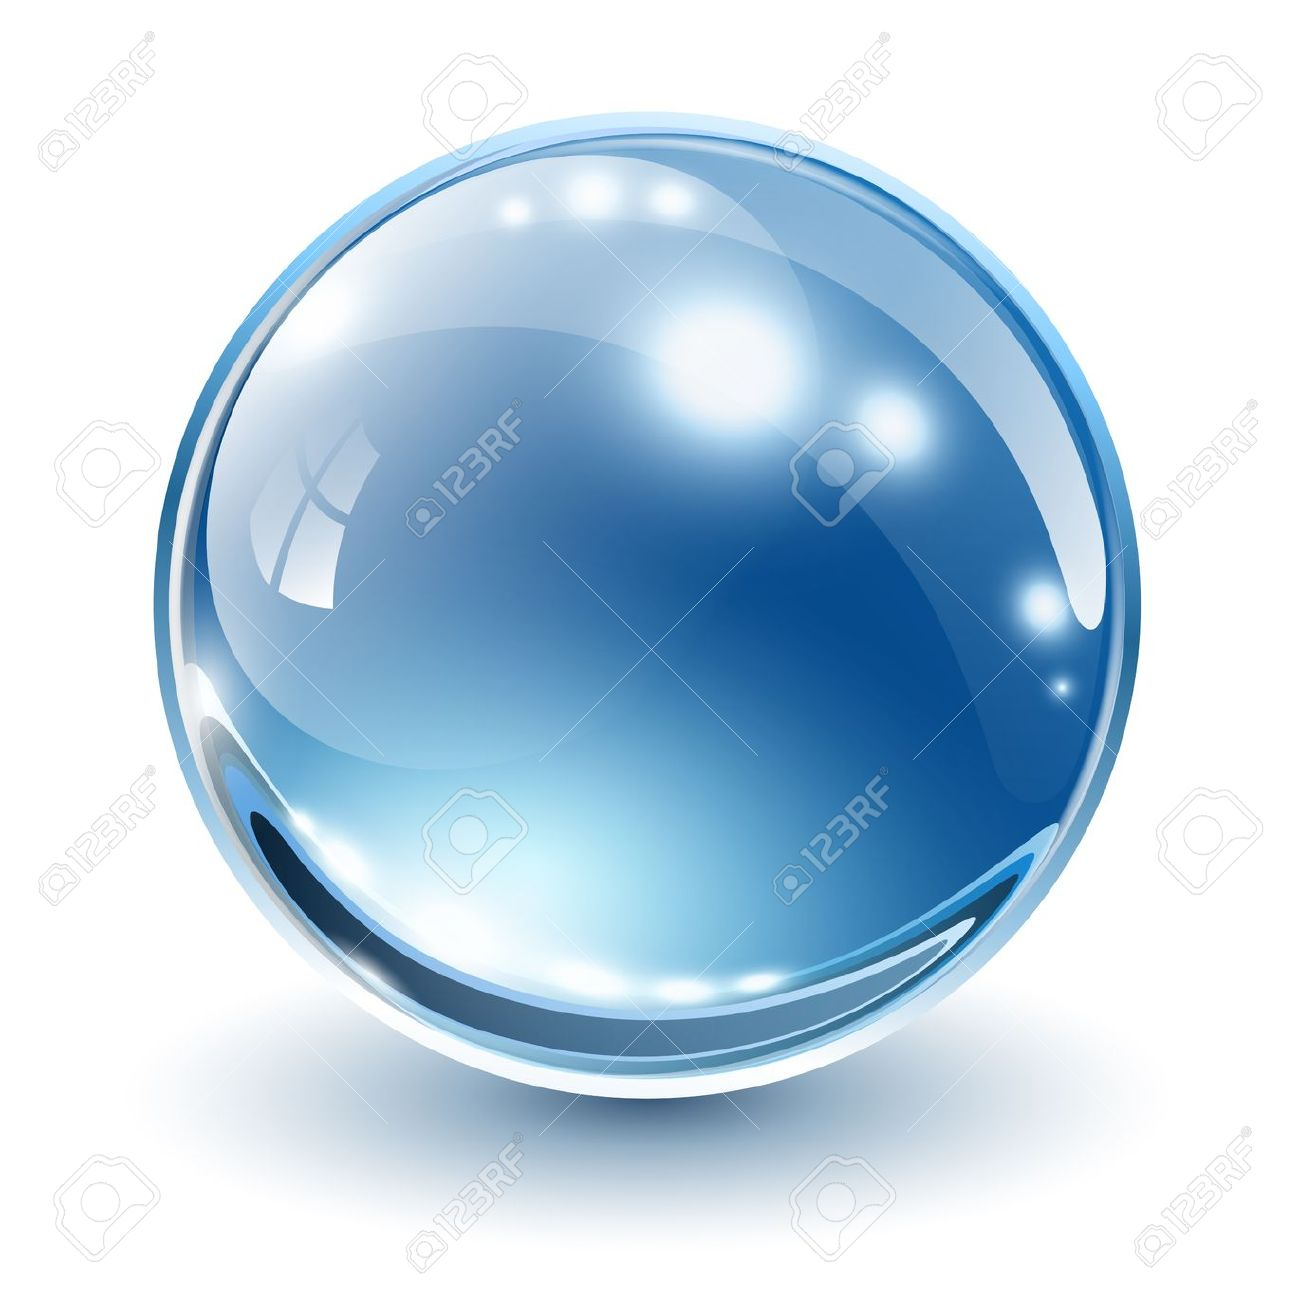 Free 3d sphere clipart.